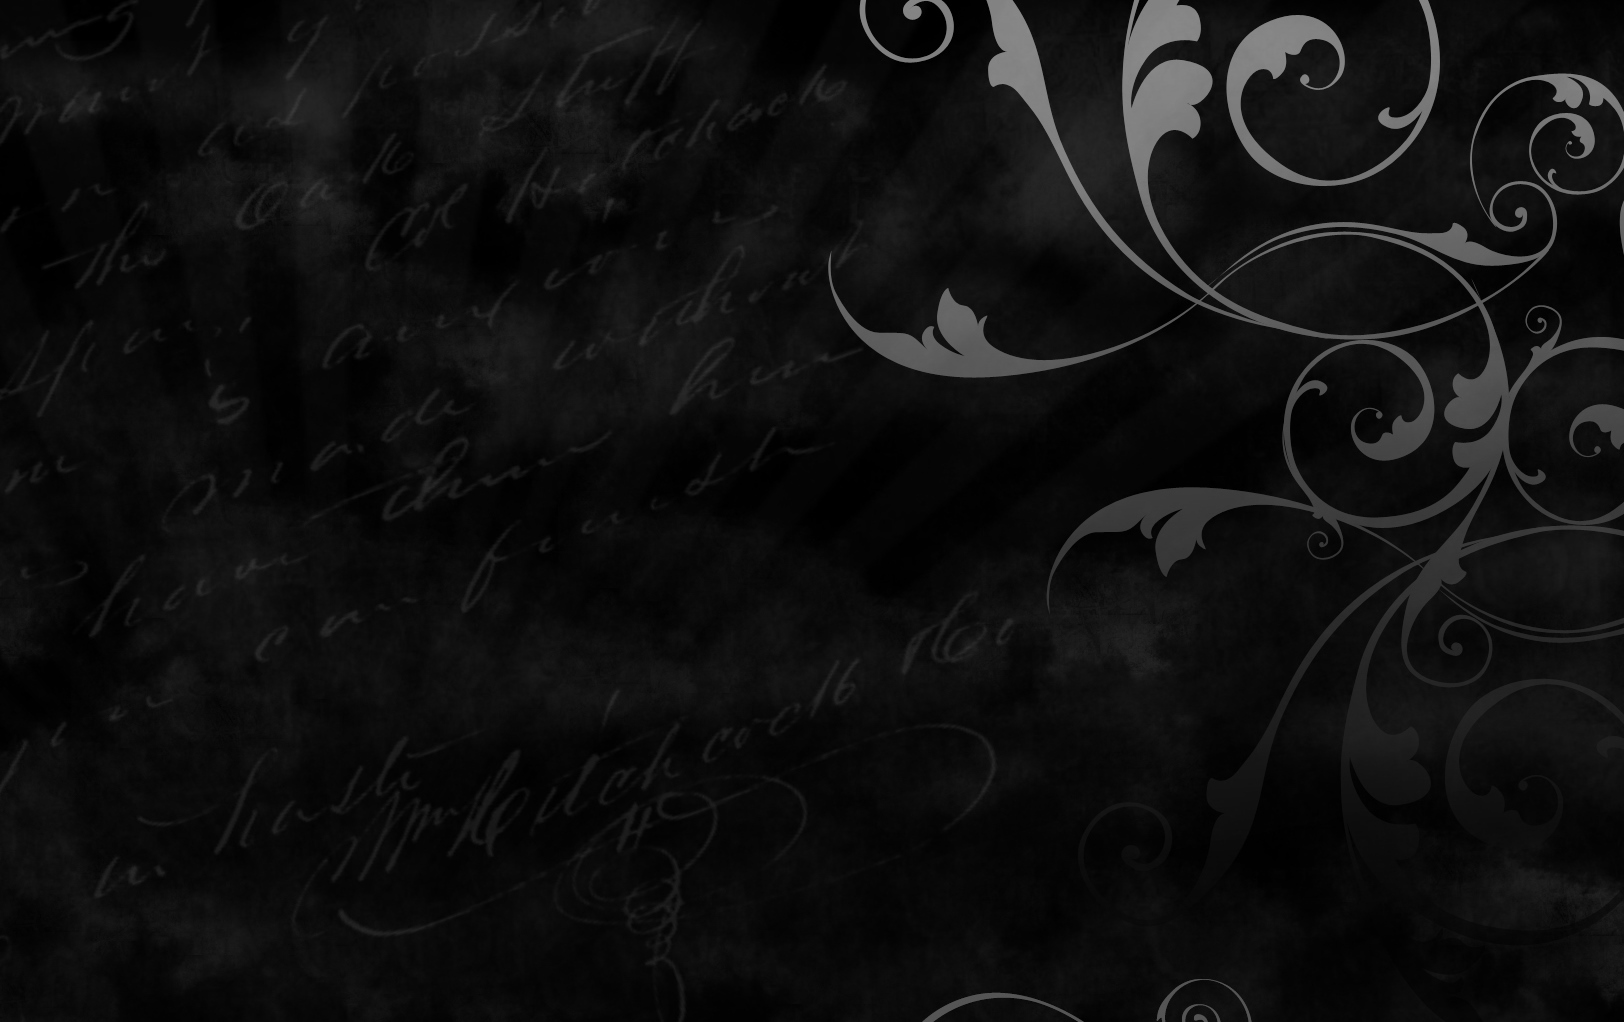 Free Download Hd Wallpapers Abstract Black Wallpaper